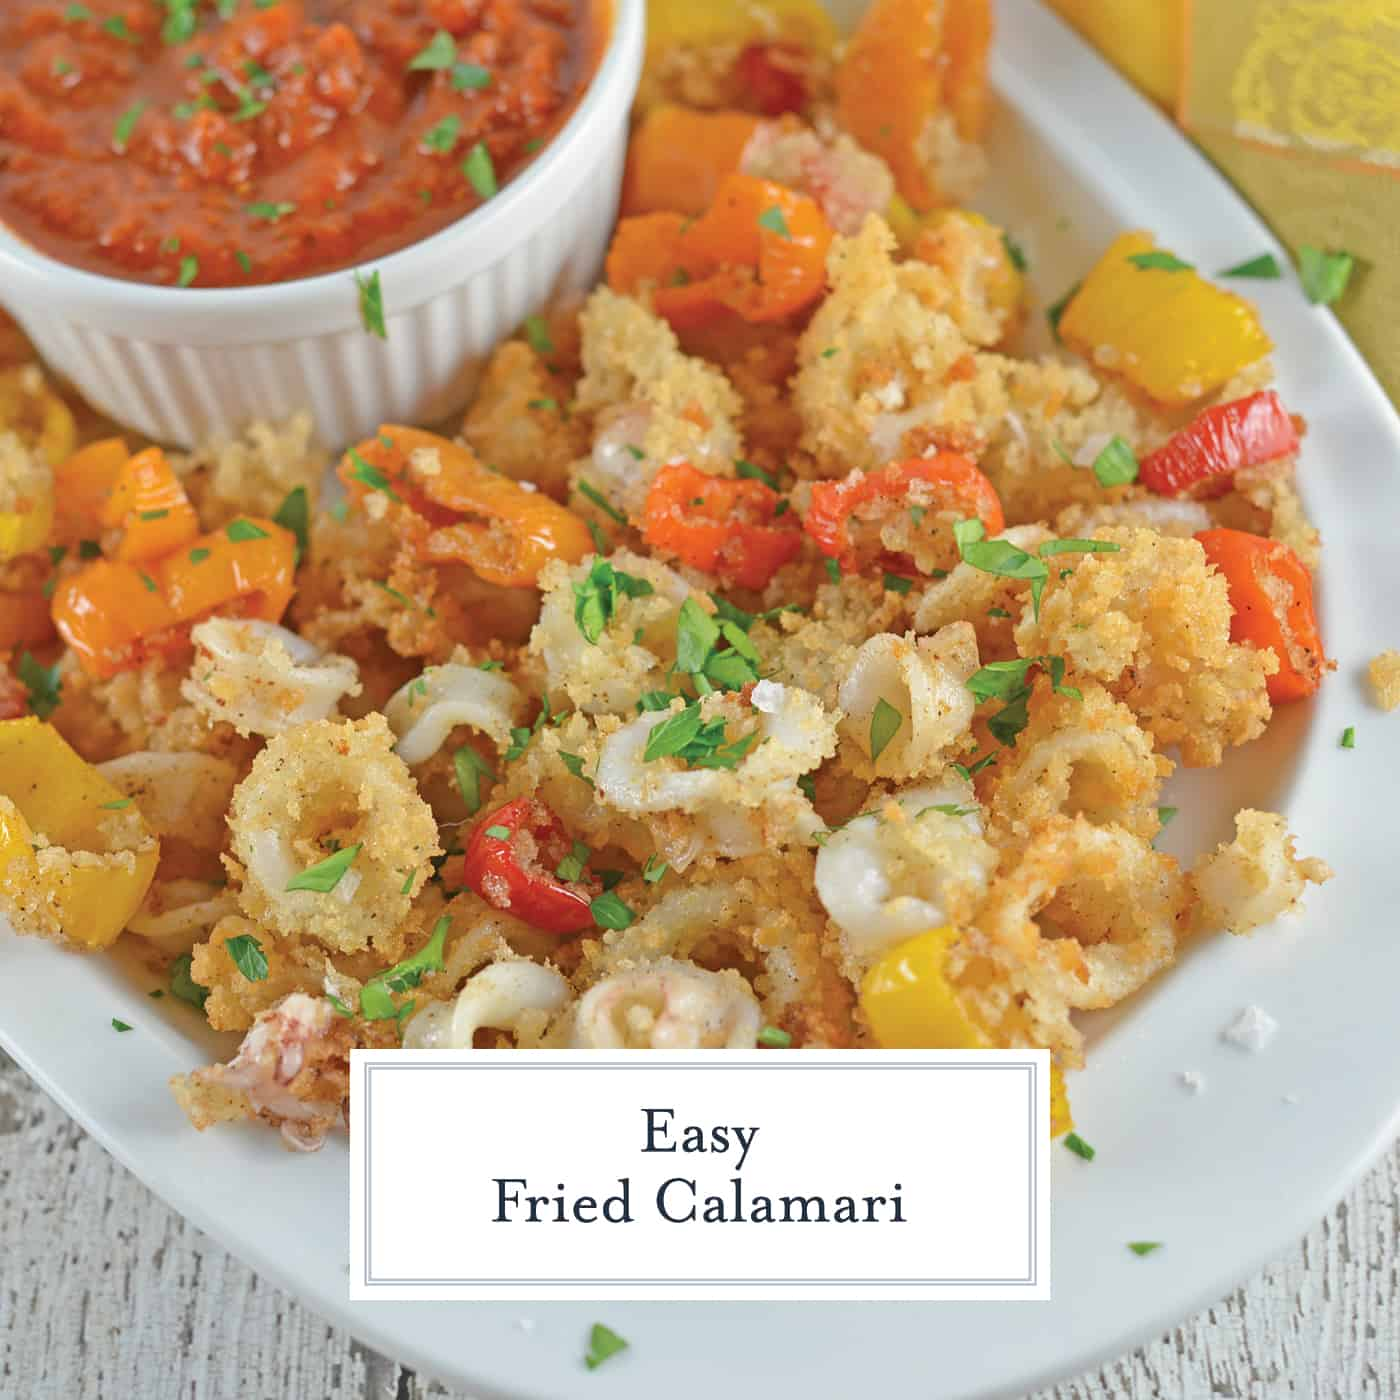 This is the best calamari recipe that you will come across, Fried Calamari are crispy squid fried to golden brown perfection. #easyfriedcalamari #calamarirecipe #calamarifritti www.savoryexperiments.com